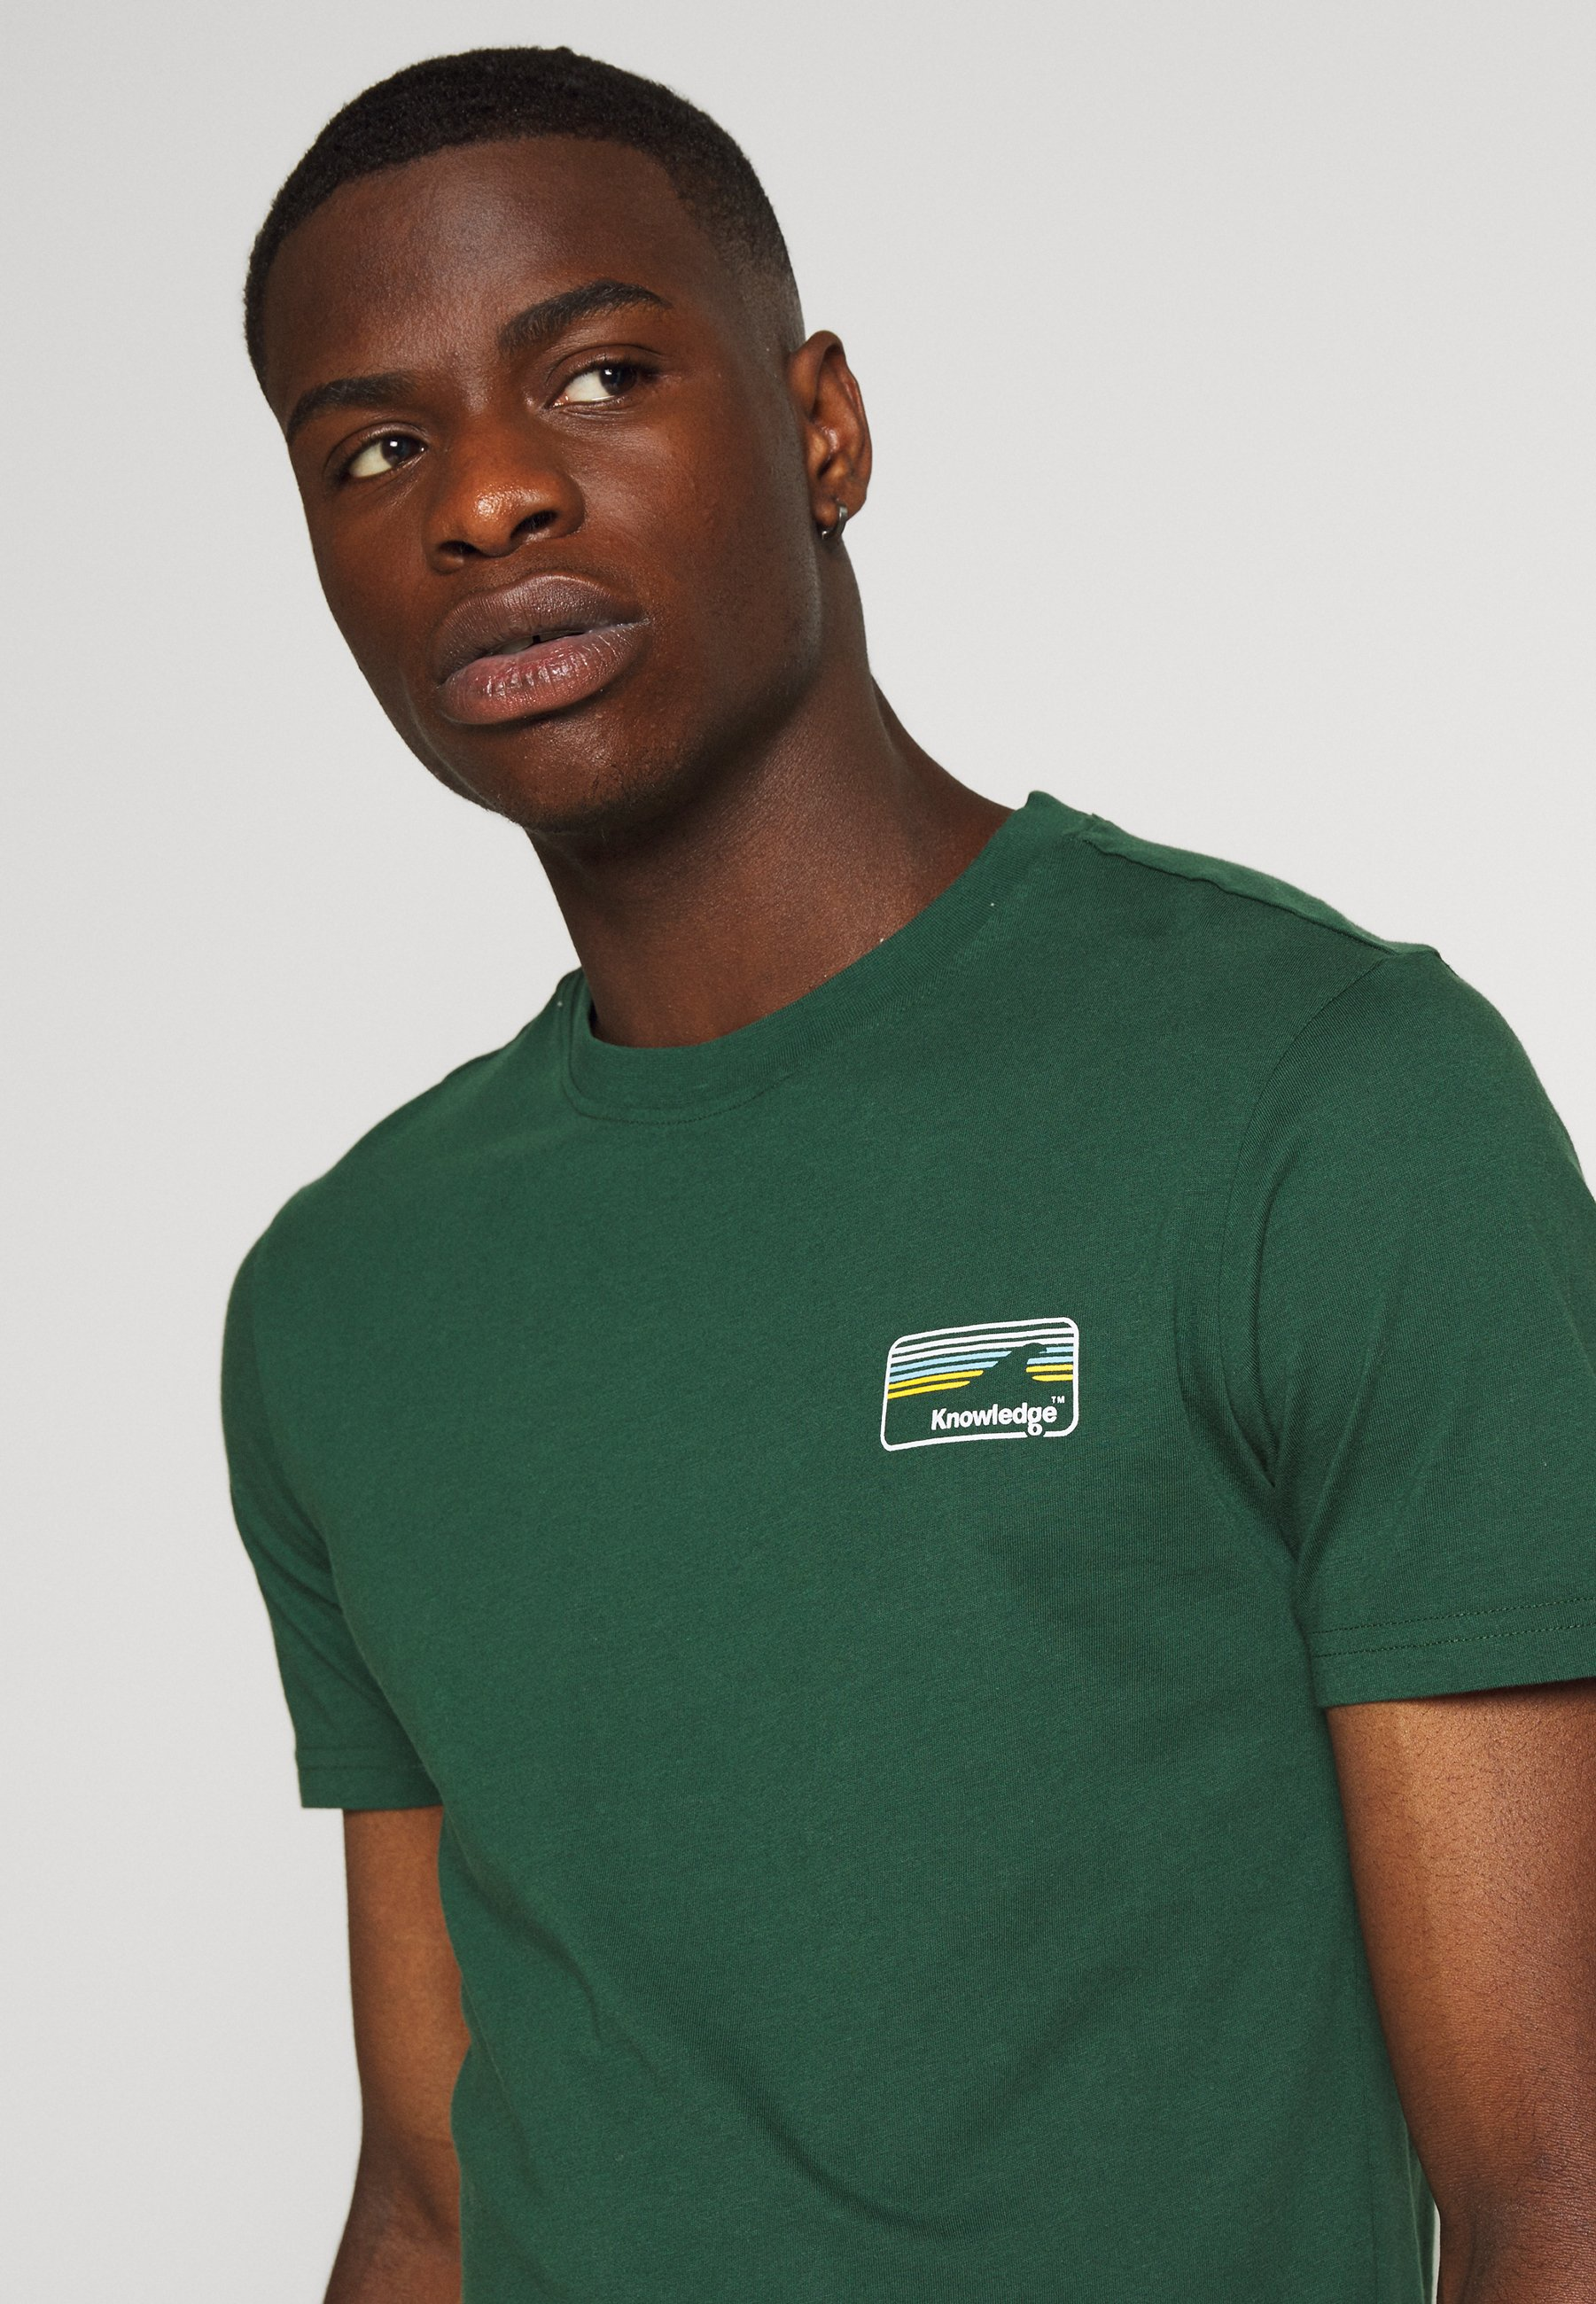 Knowledge Cotton Apparel ALDER KNOWLEDE TEE - Basic T-shirt - green Pn40V